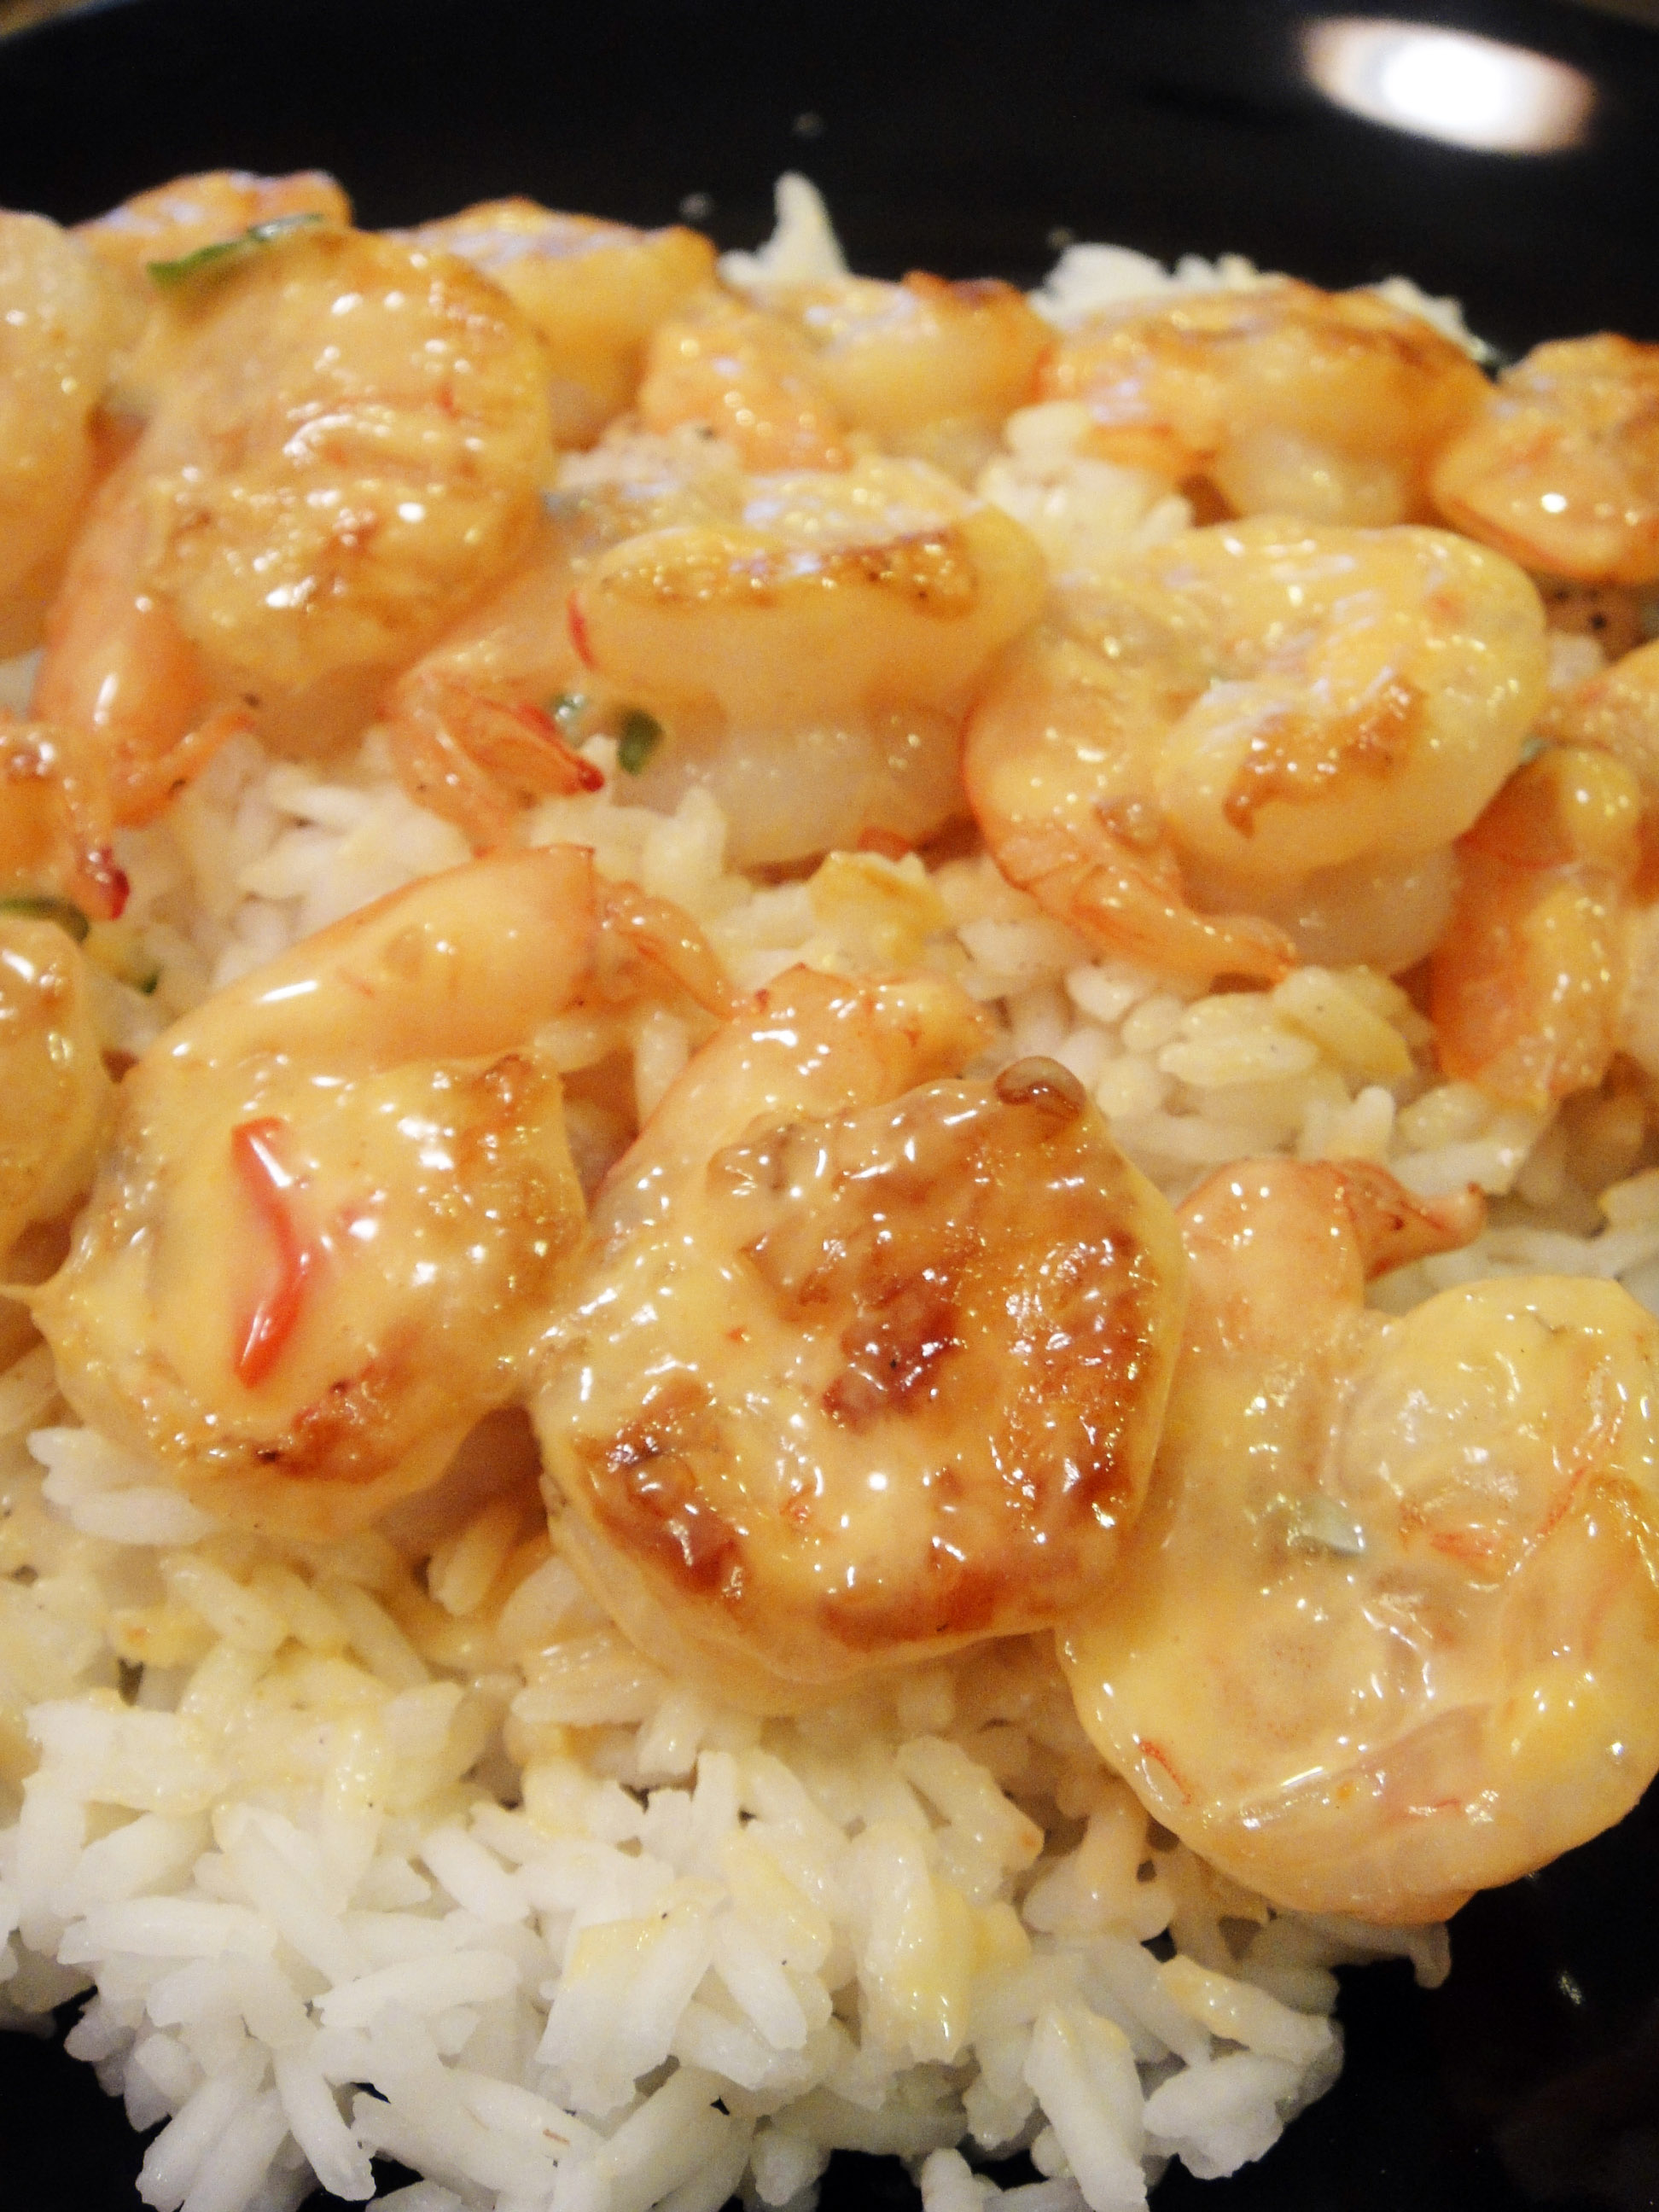 Bangin' Grilled Shrimp - My Bonefish Grill Fix at Home ...